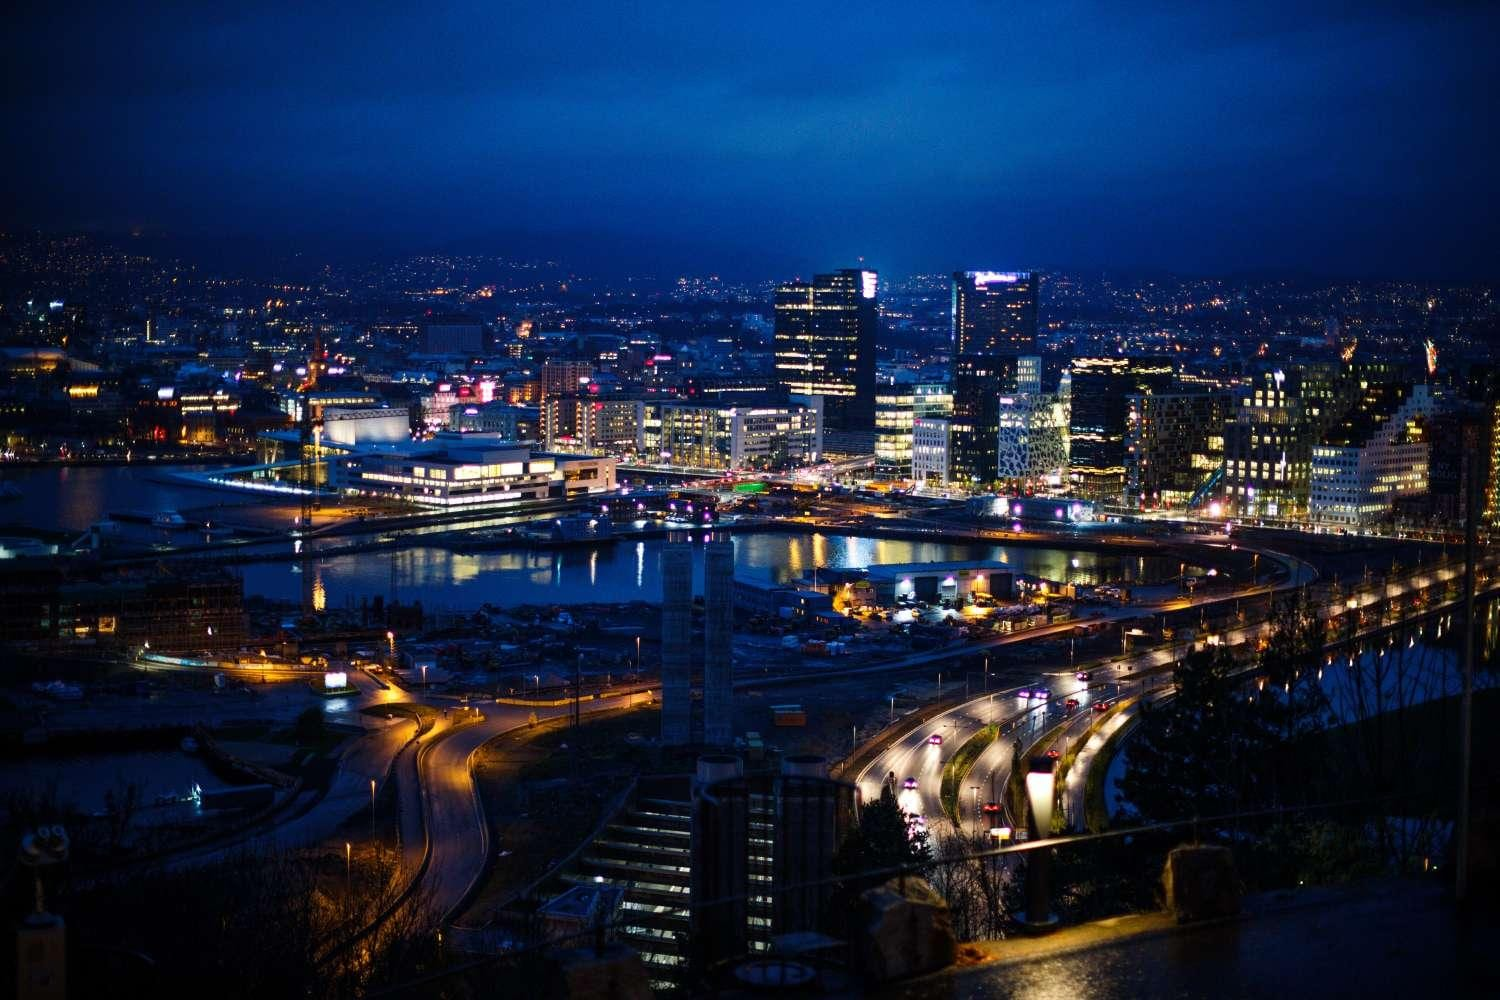 oslo at night